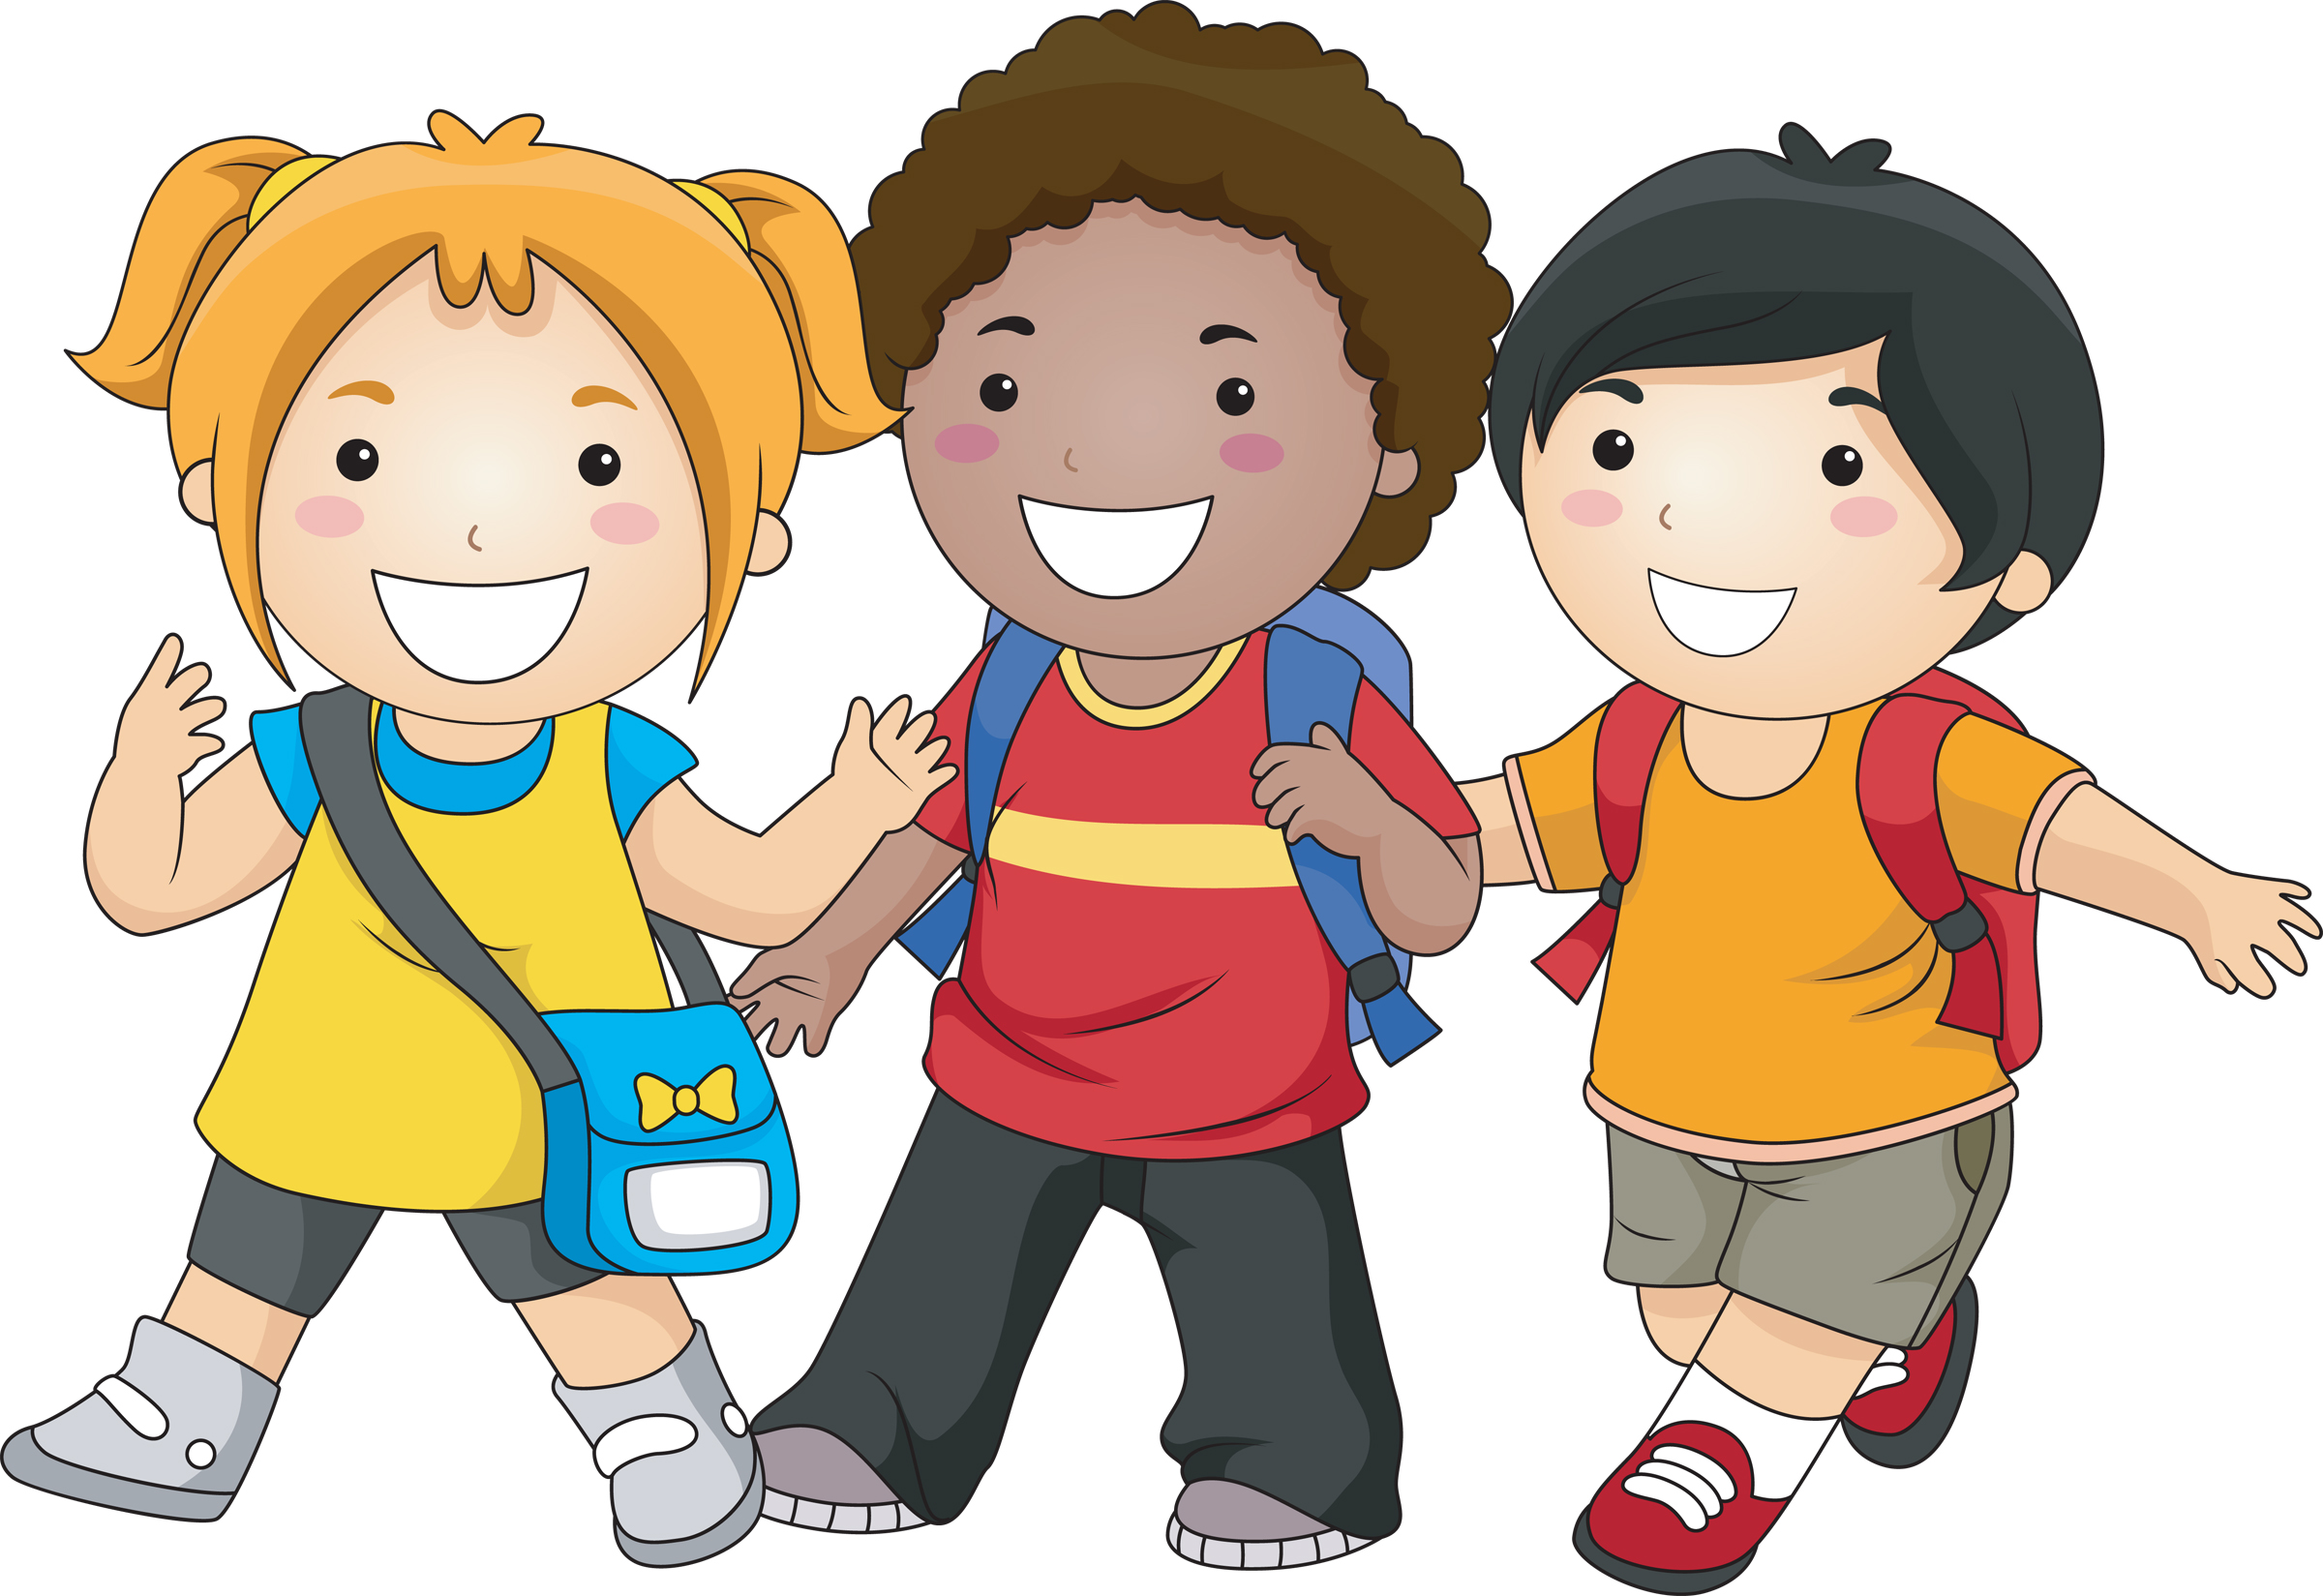 Clipart walkers from school png library download Student walking clip art - ClipartFest png library download